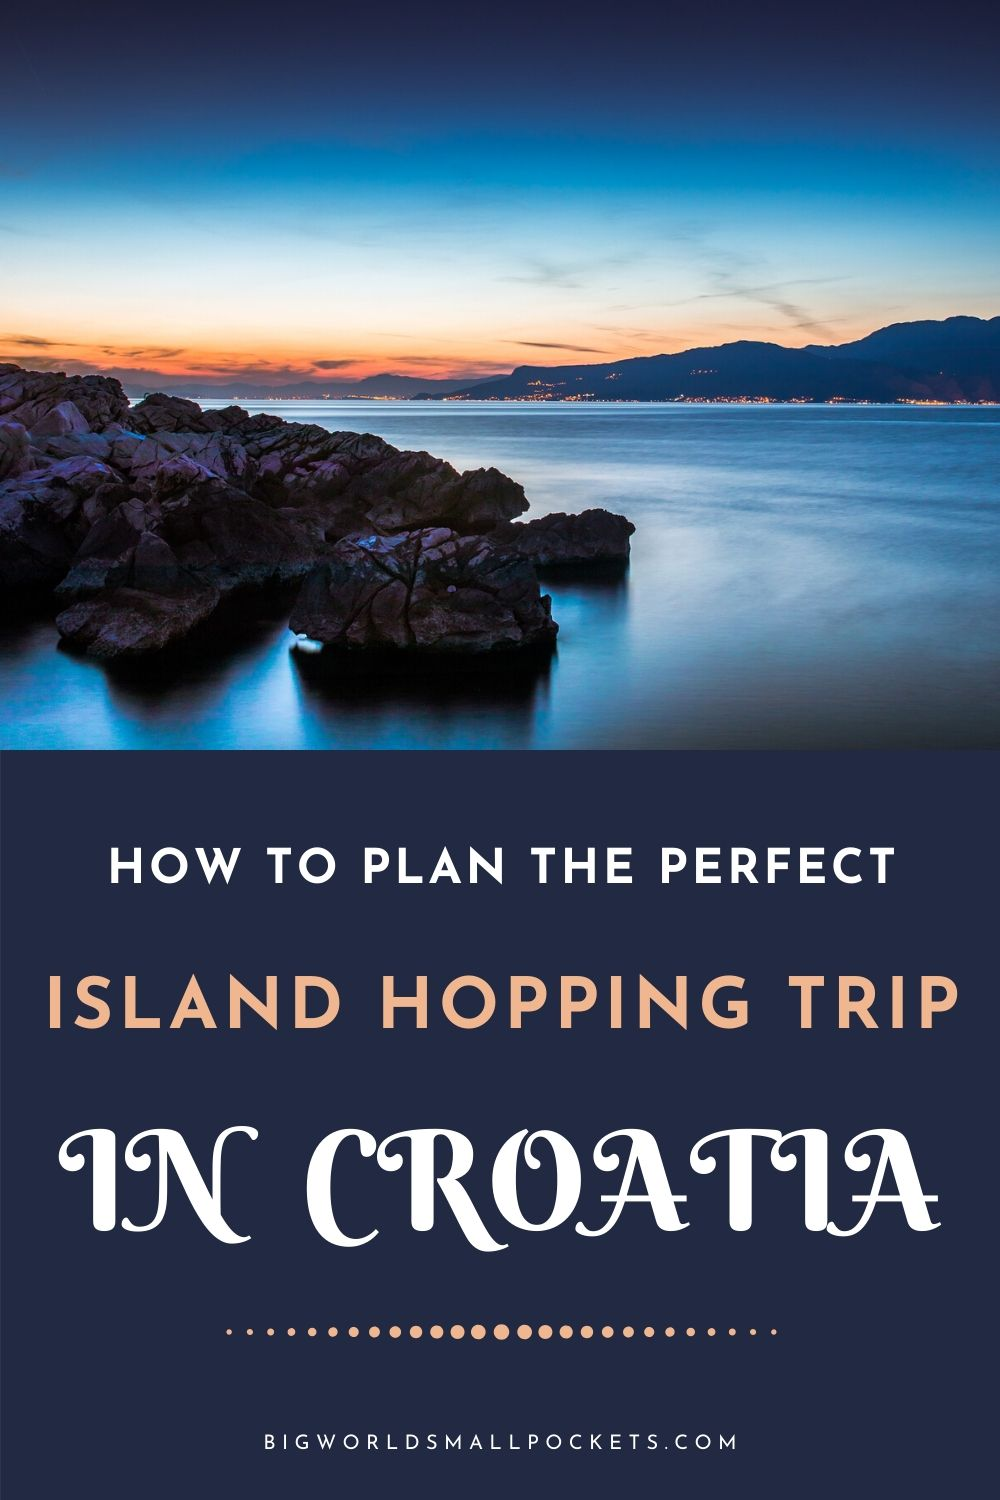 How to Plan the Perfect Island Hopping Trip in Croatia